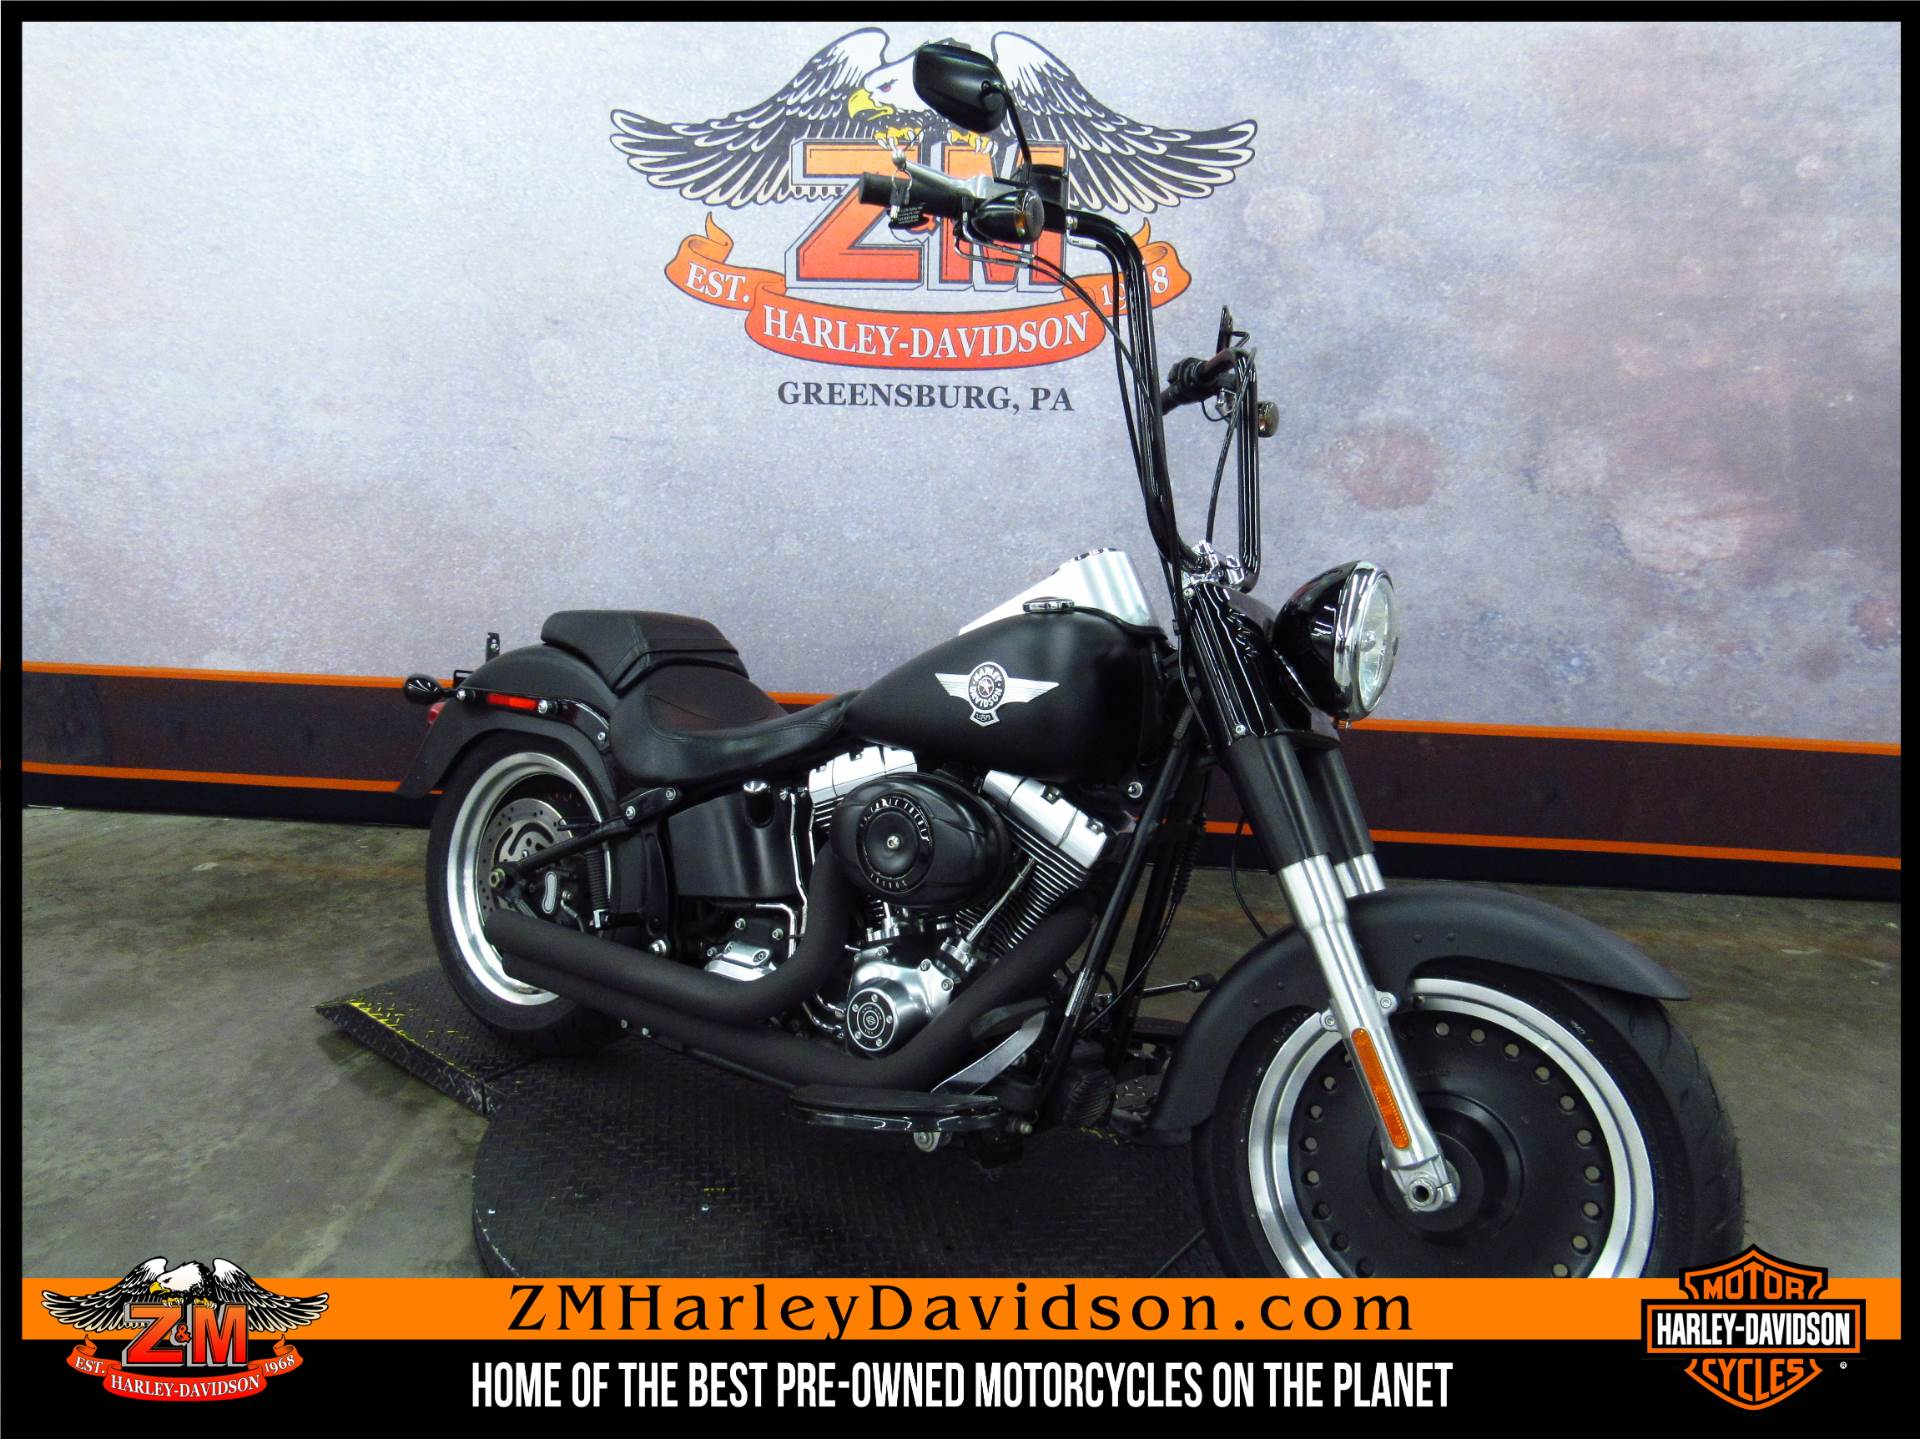 2010 Softail Fat Boy Lo